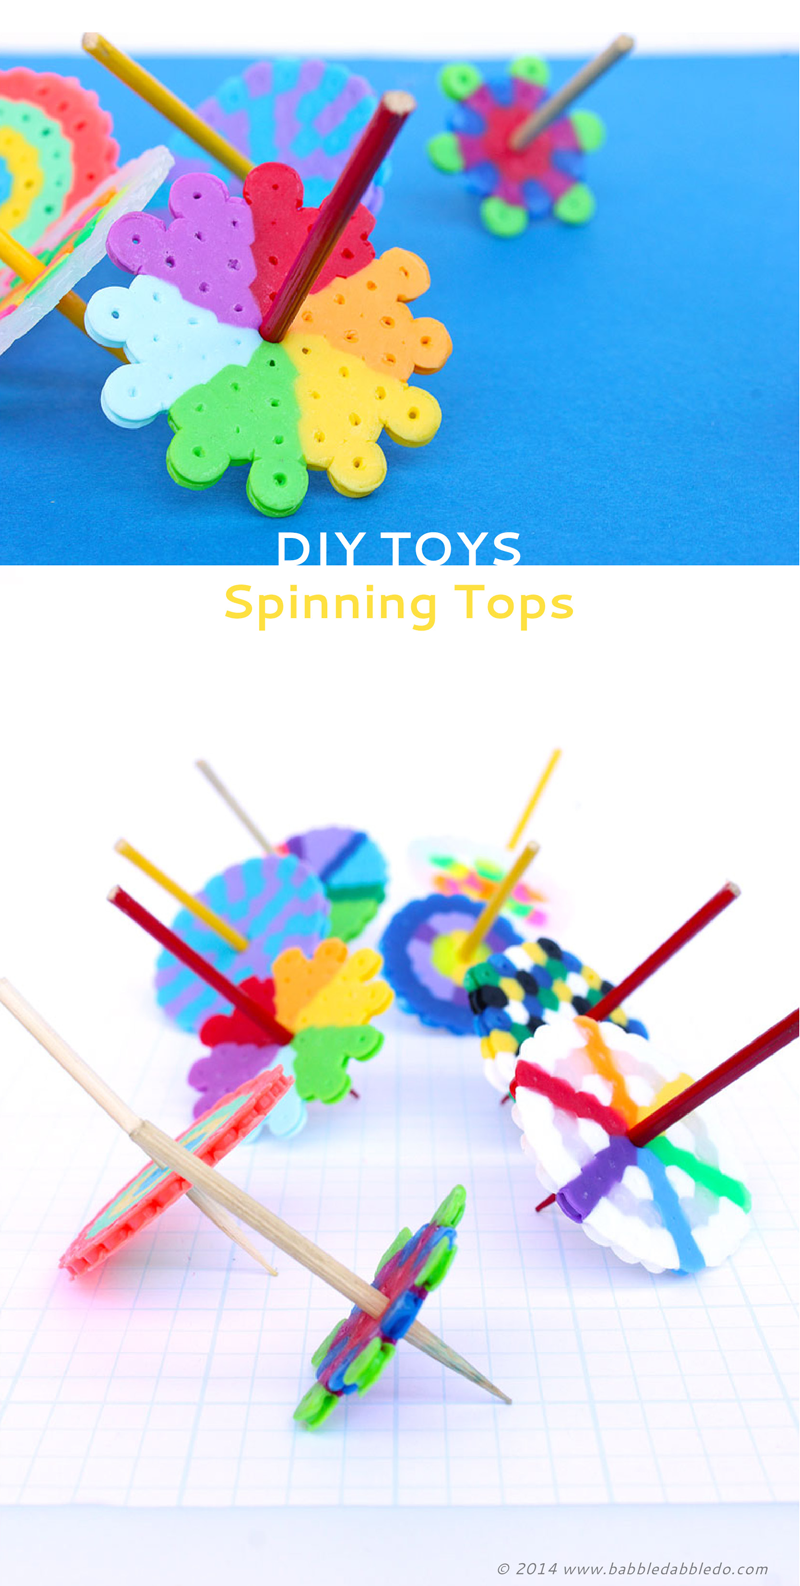 DIY TOYS: Spinning Tops (+ Magical Disappearing Colors) - Babble Dabble Do